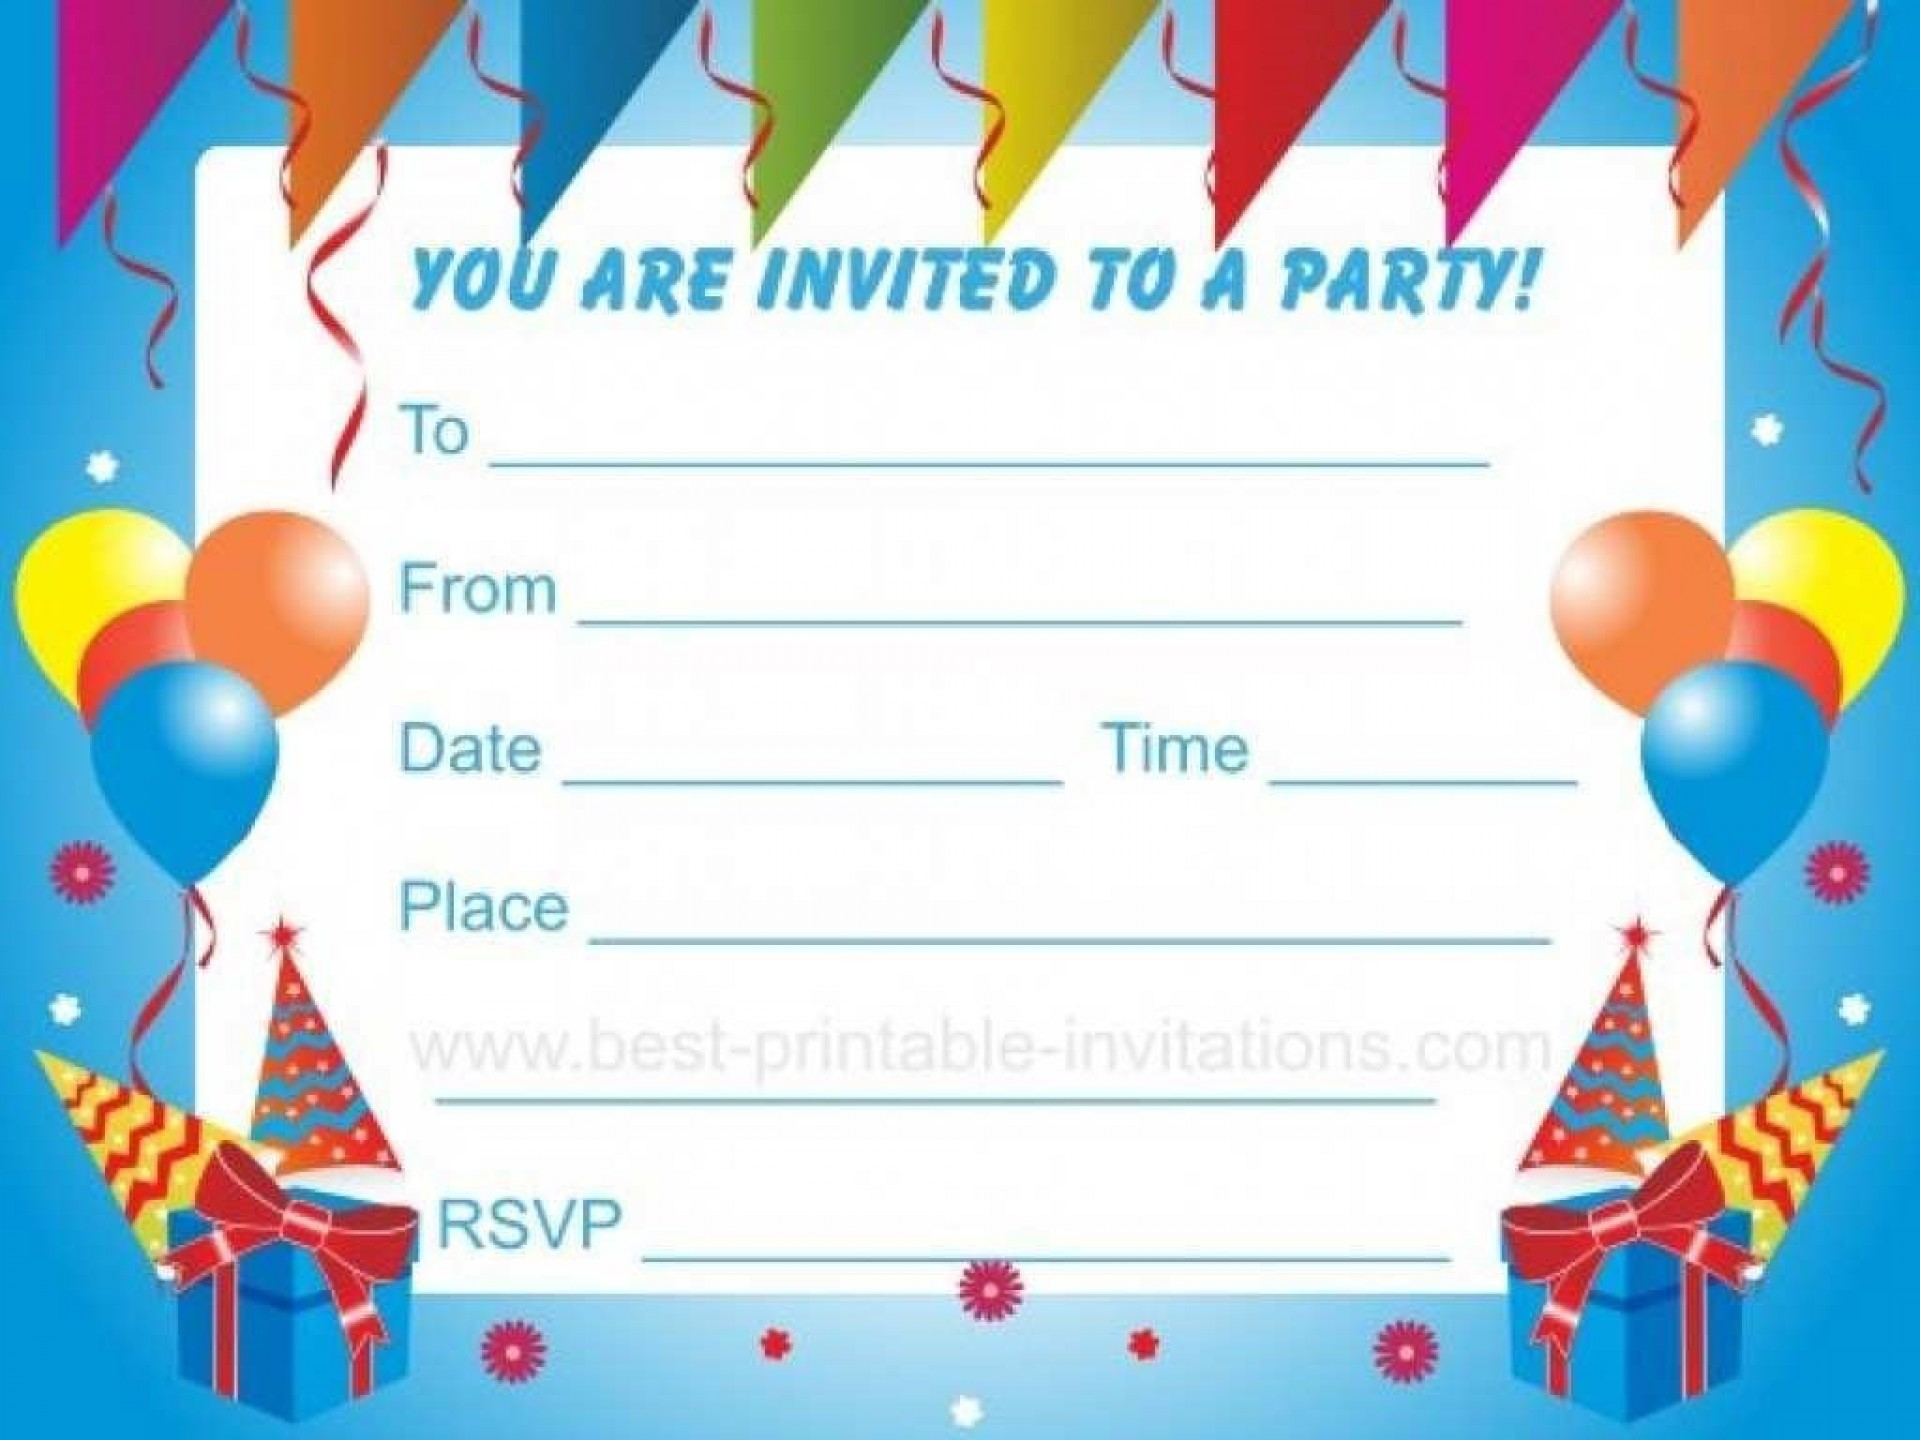 002 Sensational Birthday Party Invitation Template Inspiration  Templates Google Doc 80th Free Download Online1920